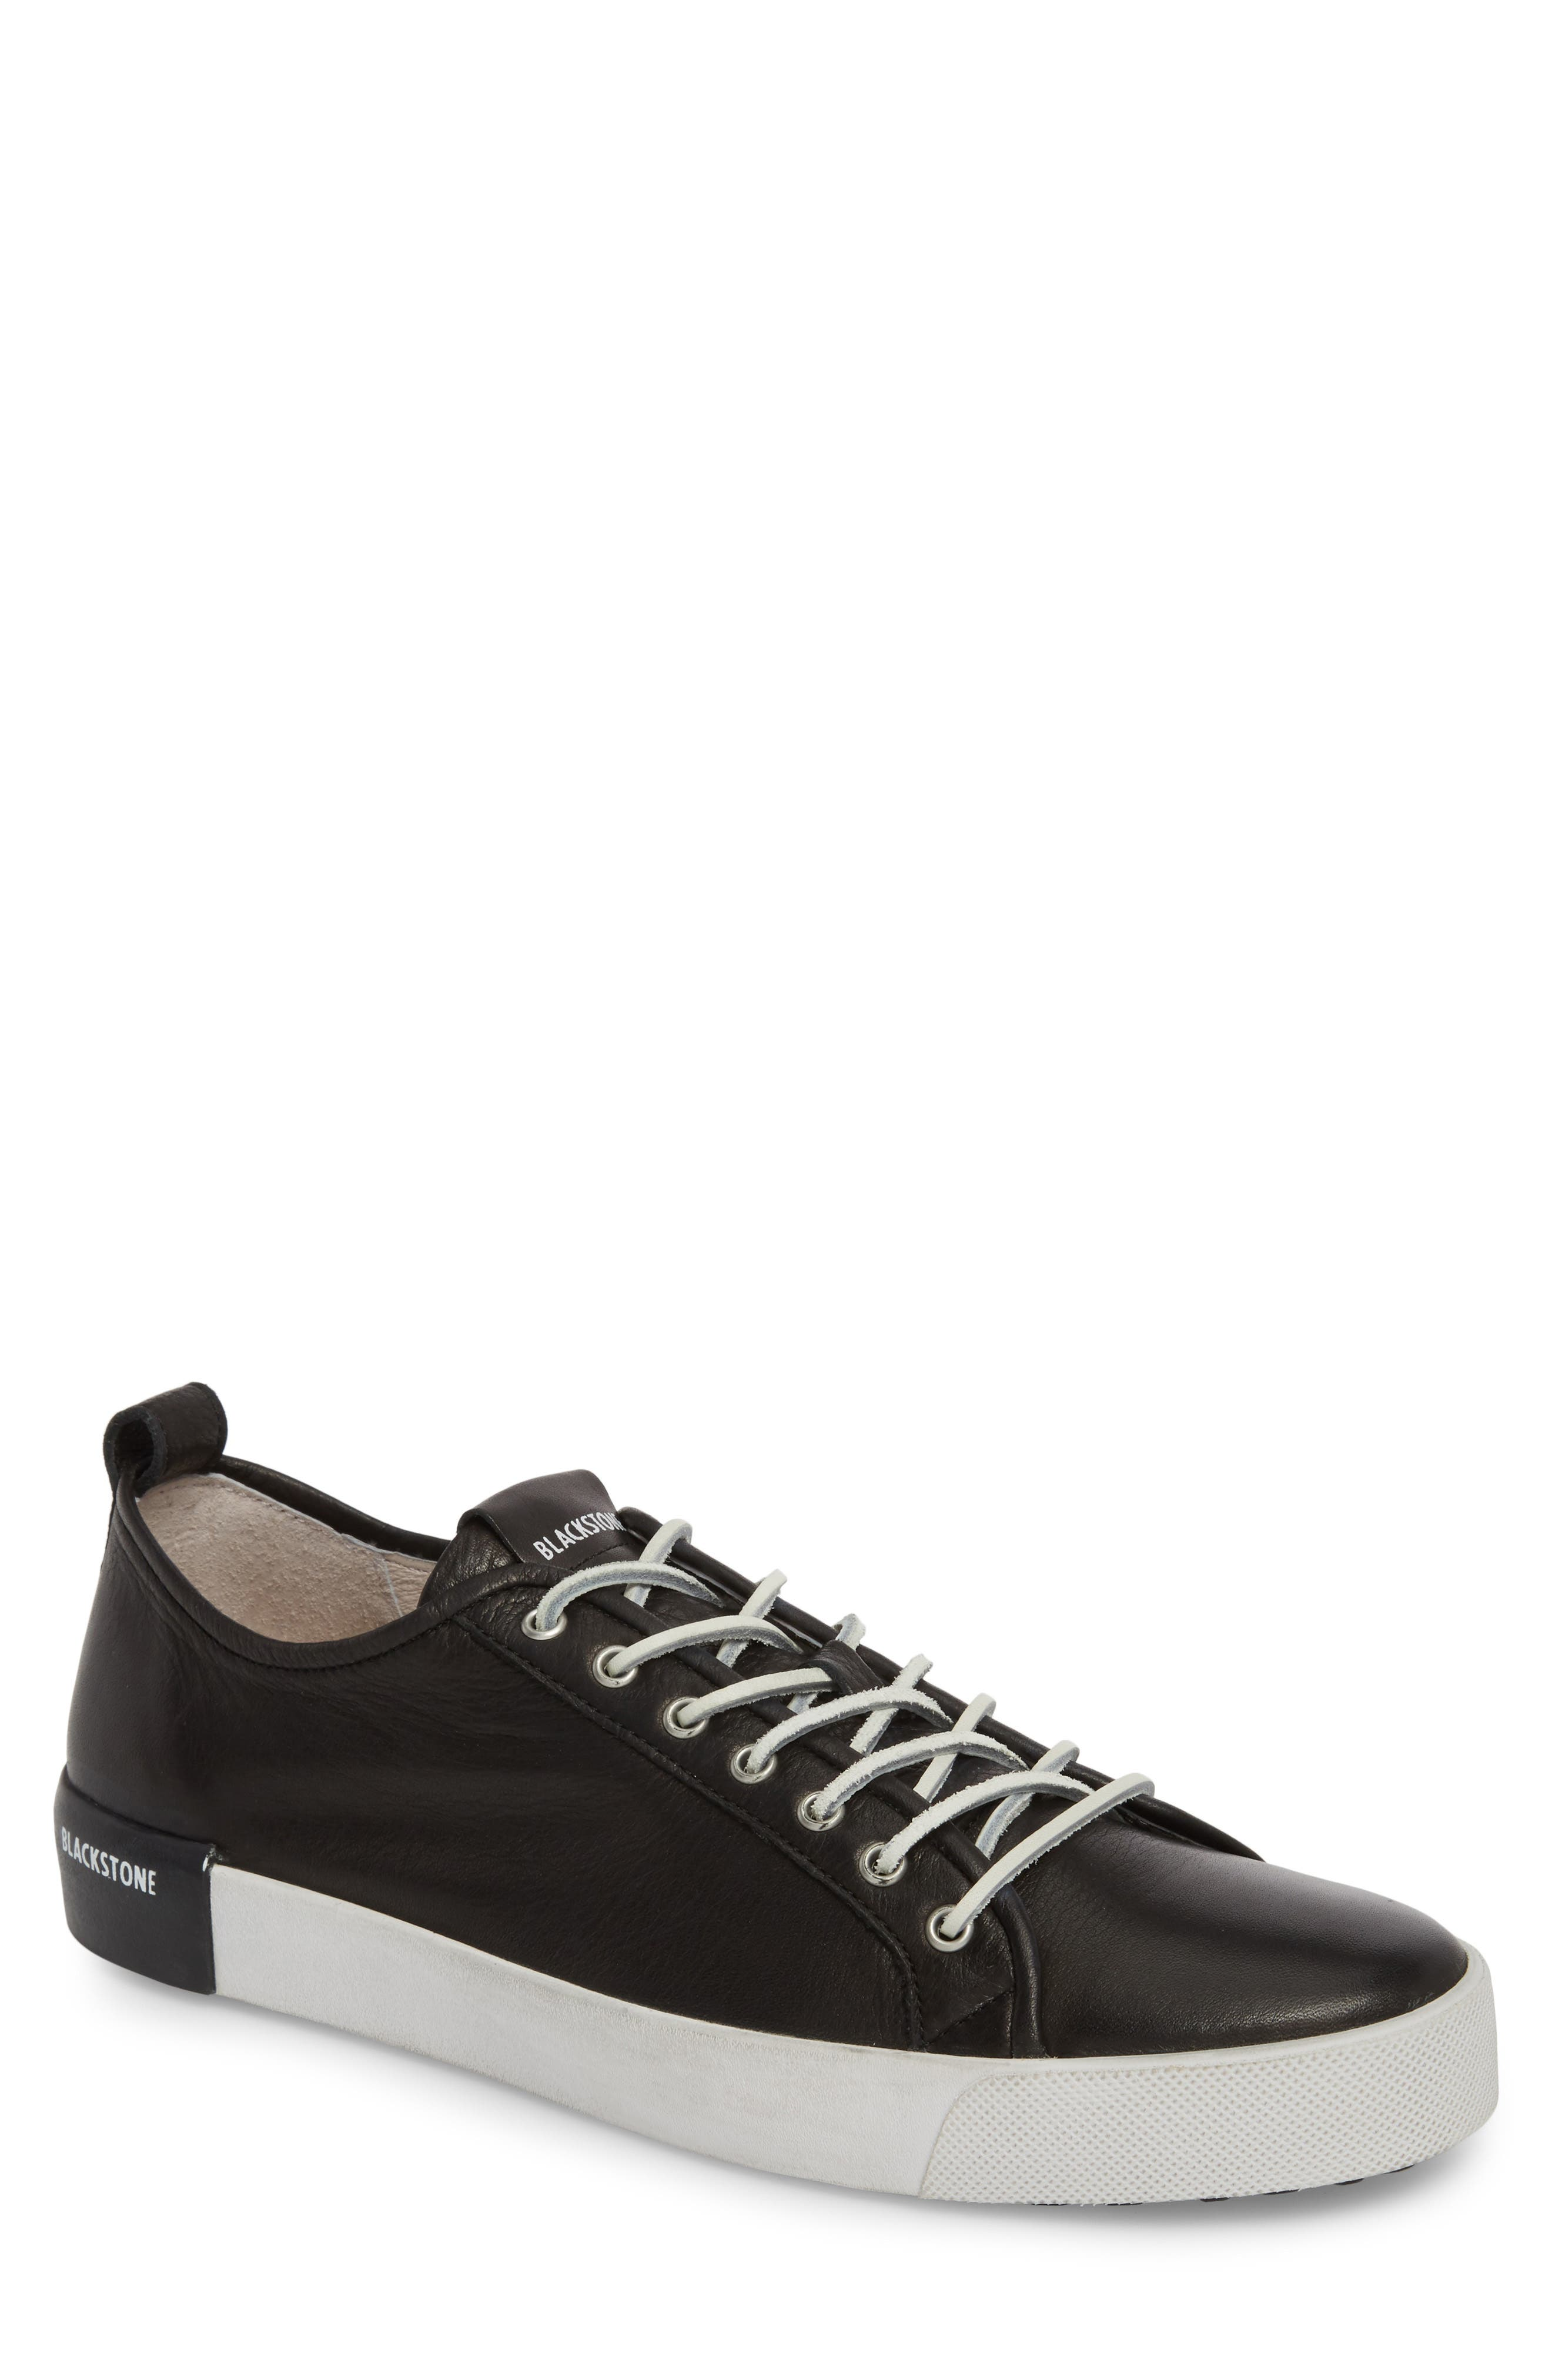 PM66 Low Top Sneaker,                         Main,                         color, BLACK LEATHER